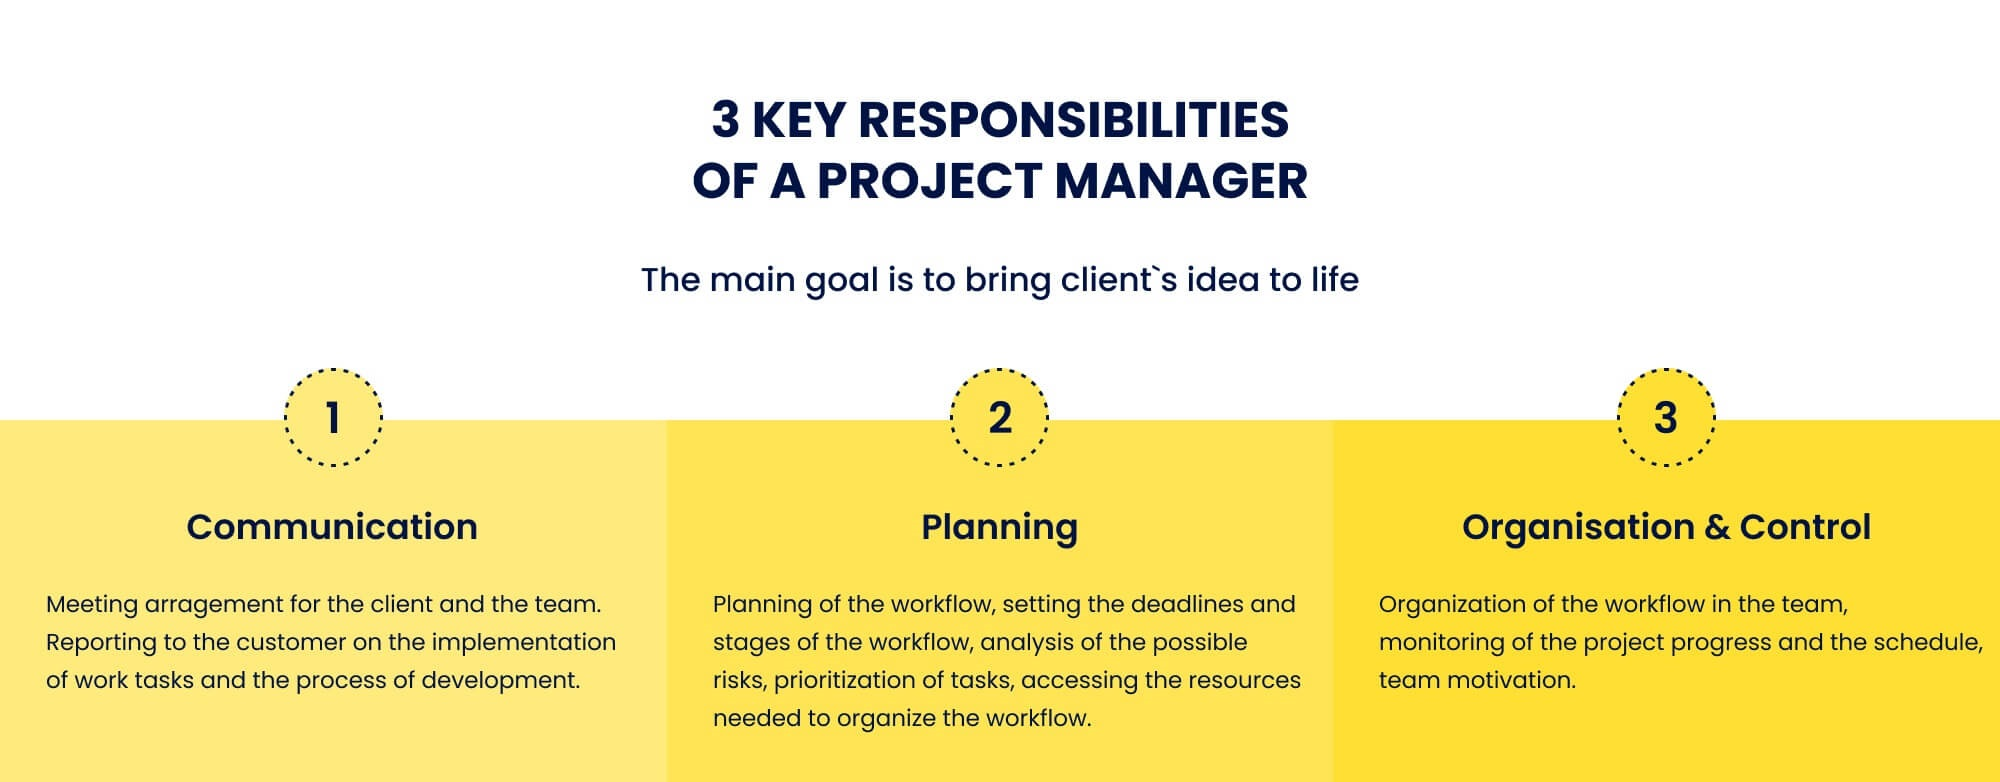 Responsibilities of a Project Manager